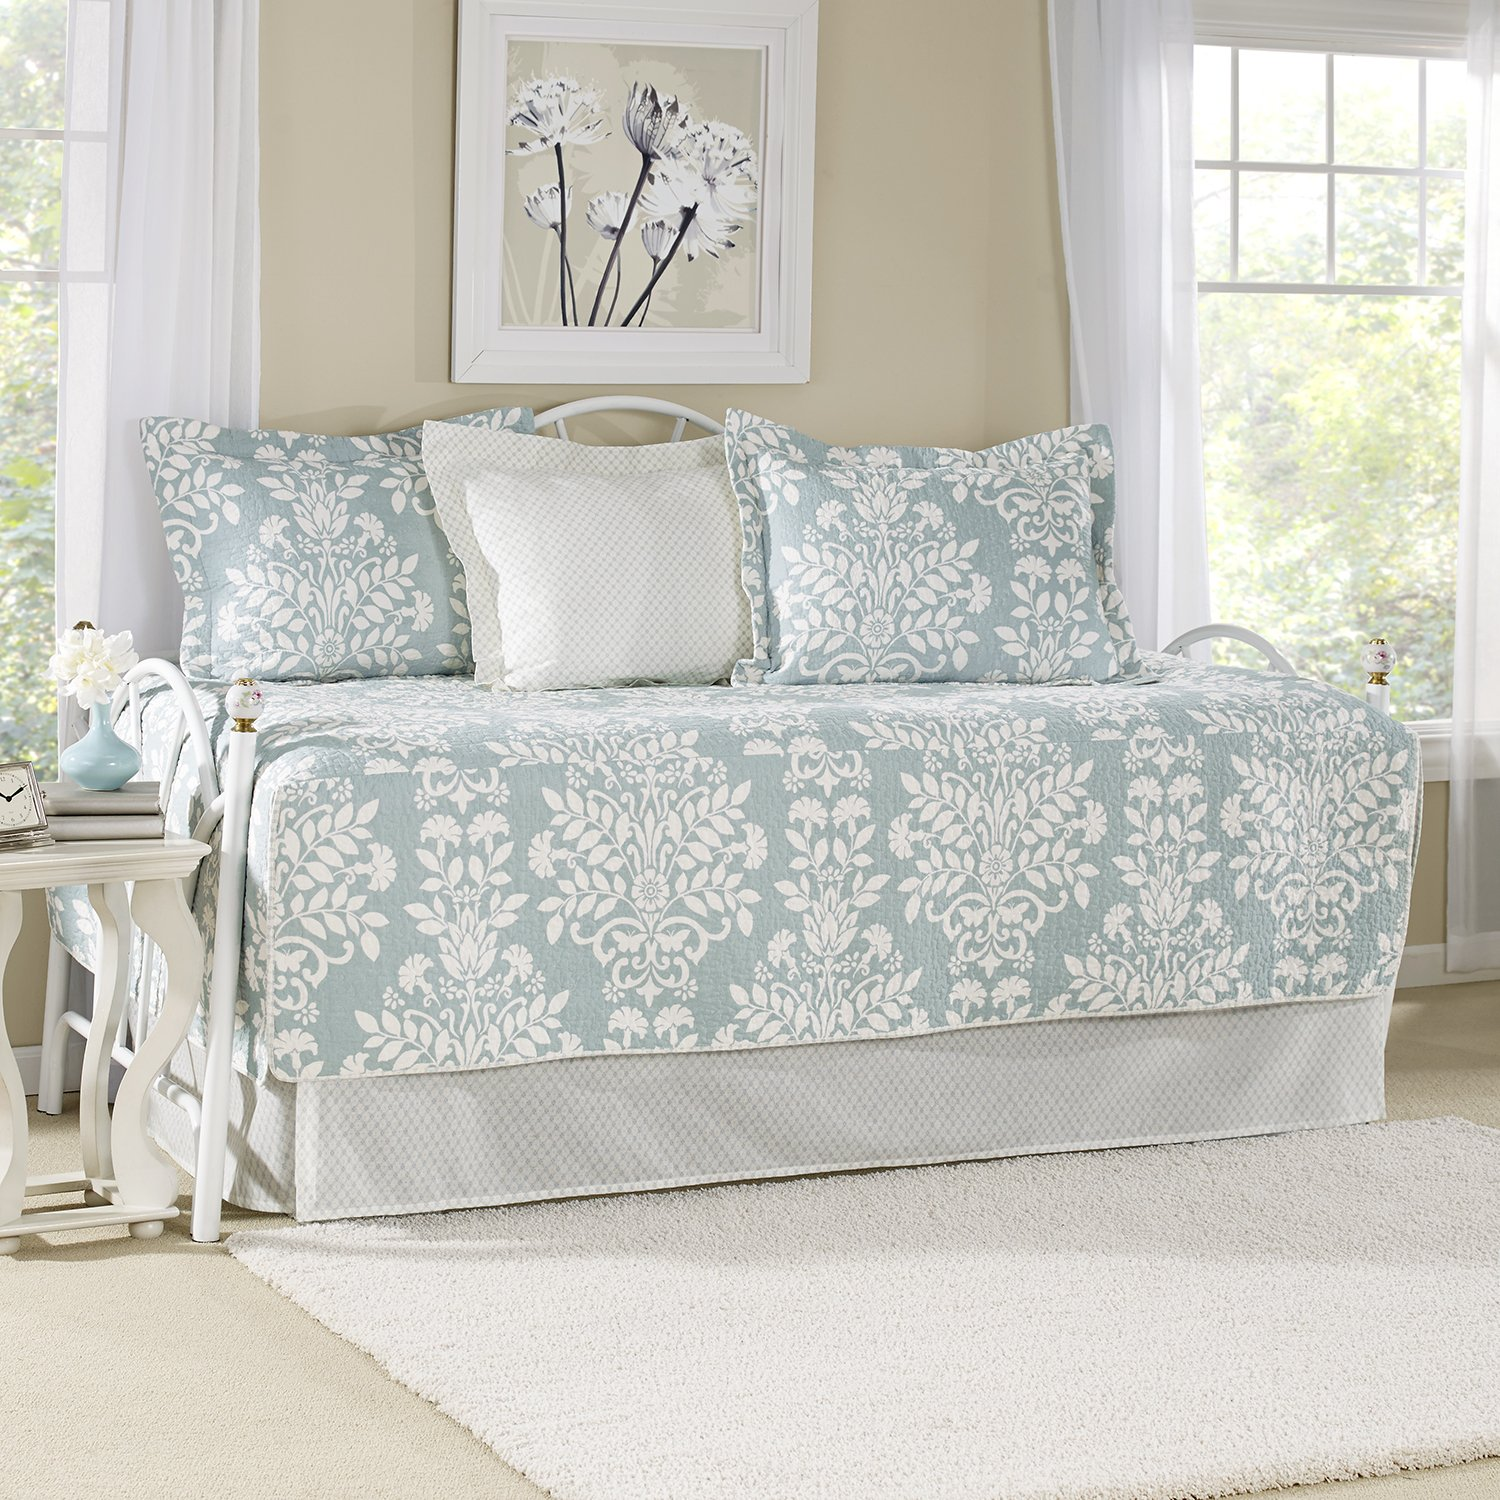 Laura Ashley 5-Piece Rowland Breeze Daybed Cover Set